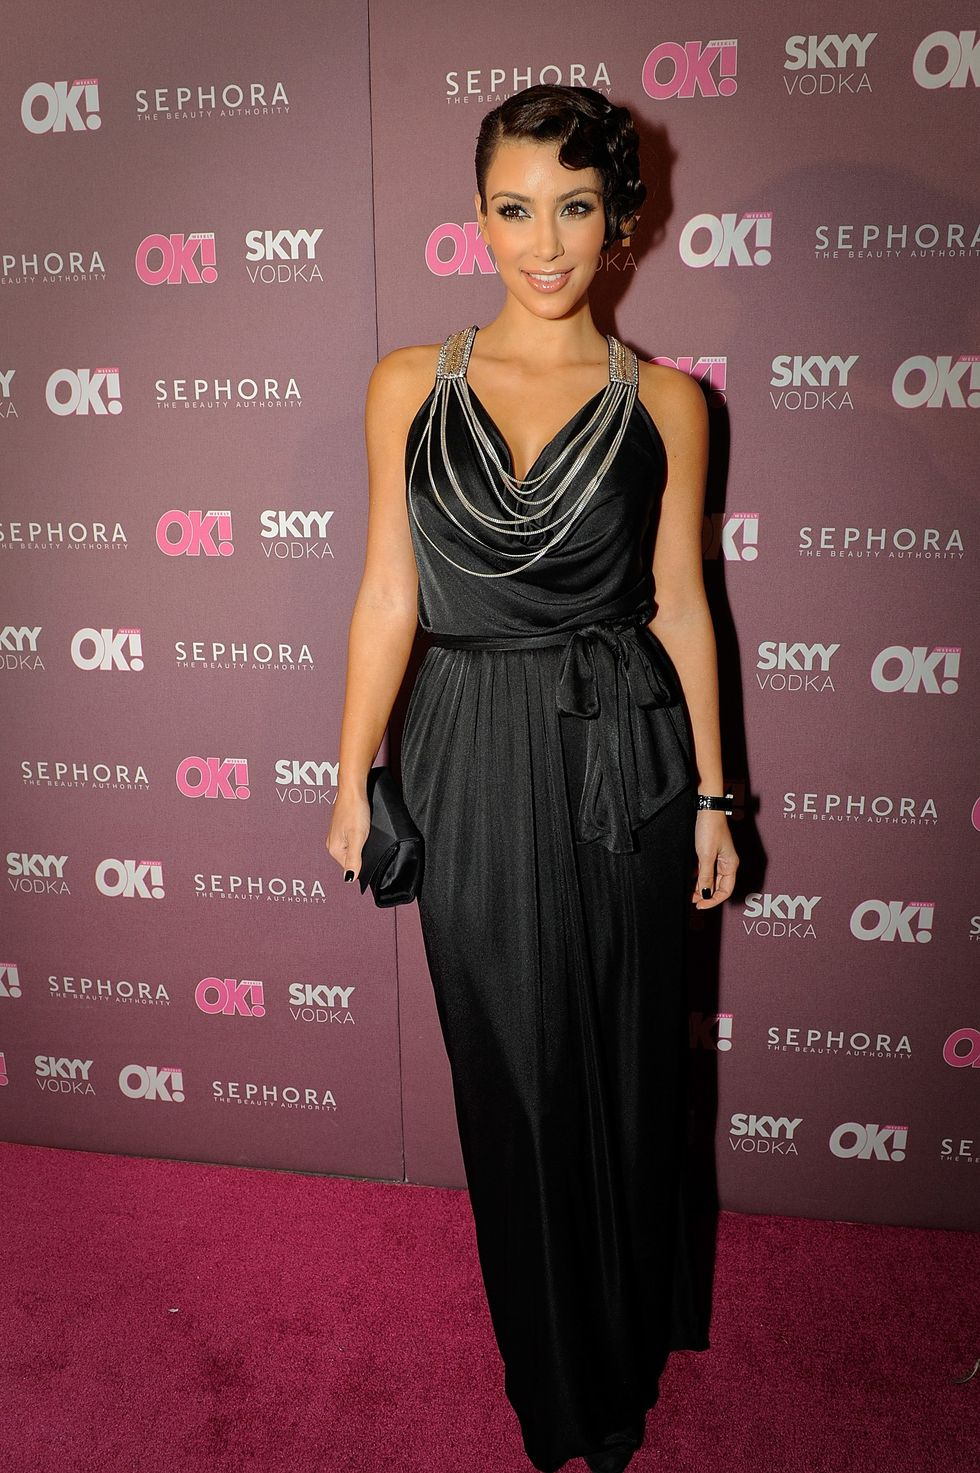 kim-kardashian-ok-magazine-event-in-new-york-01